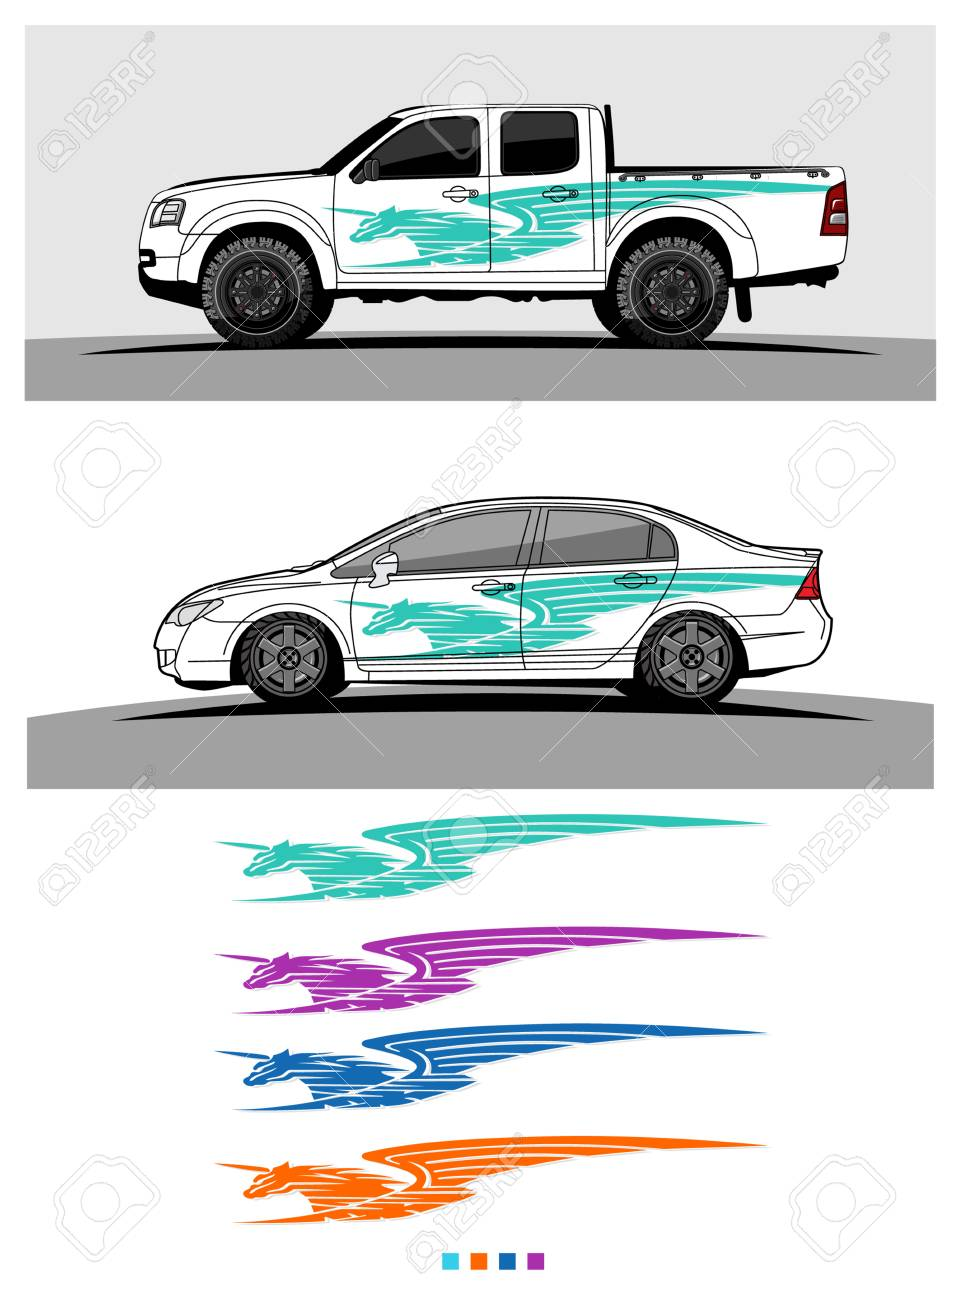 Pickup truck graphic vector abstract racing shape design for vehicle vinyl wrap stock vector